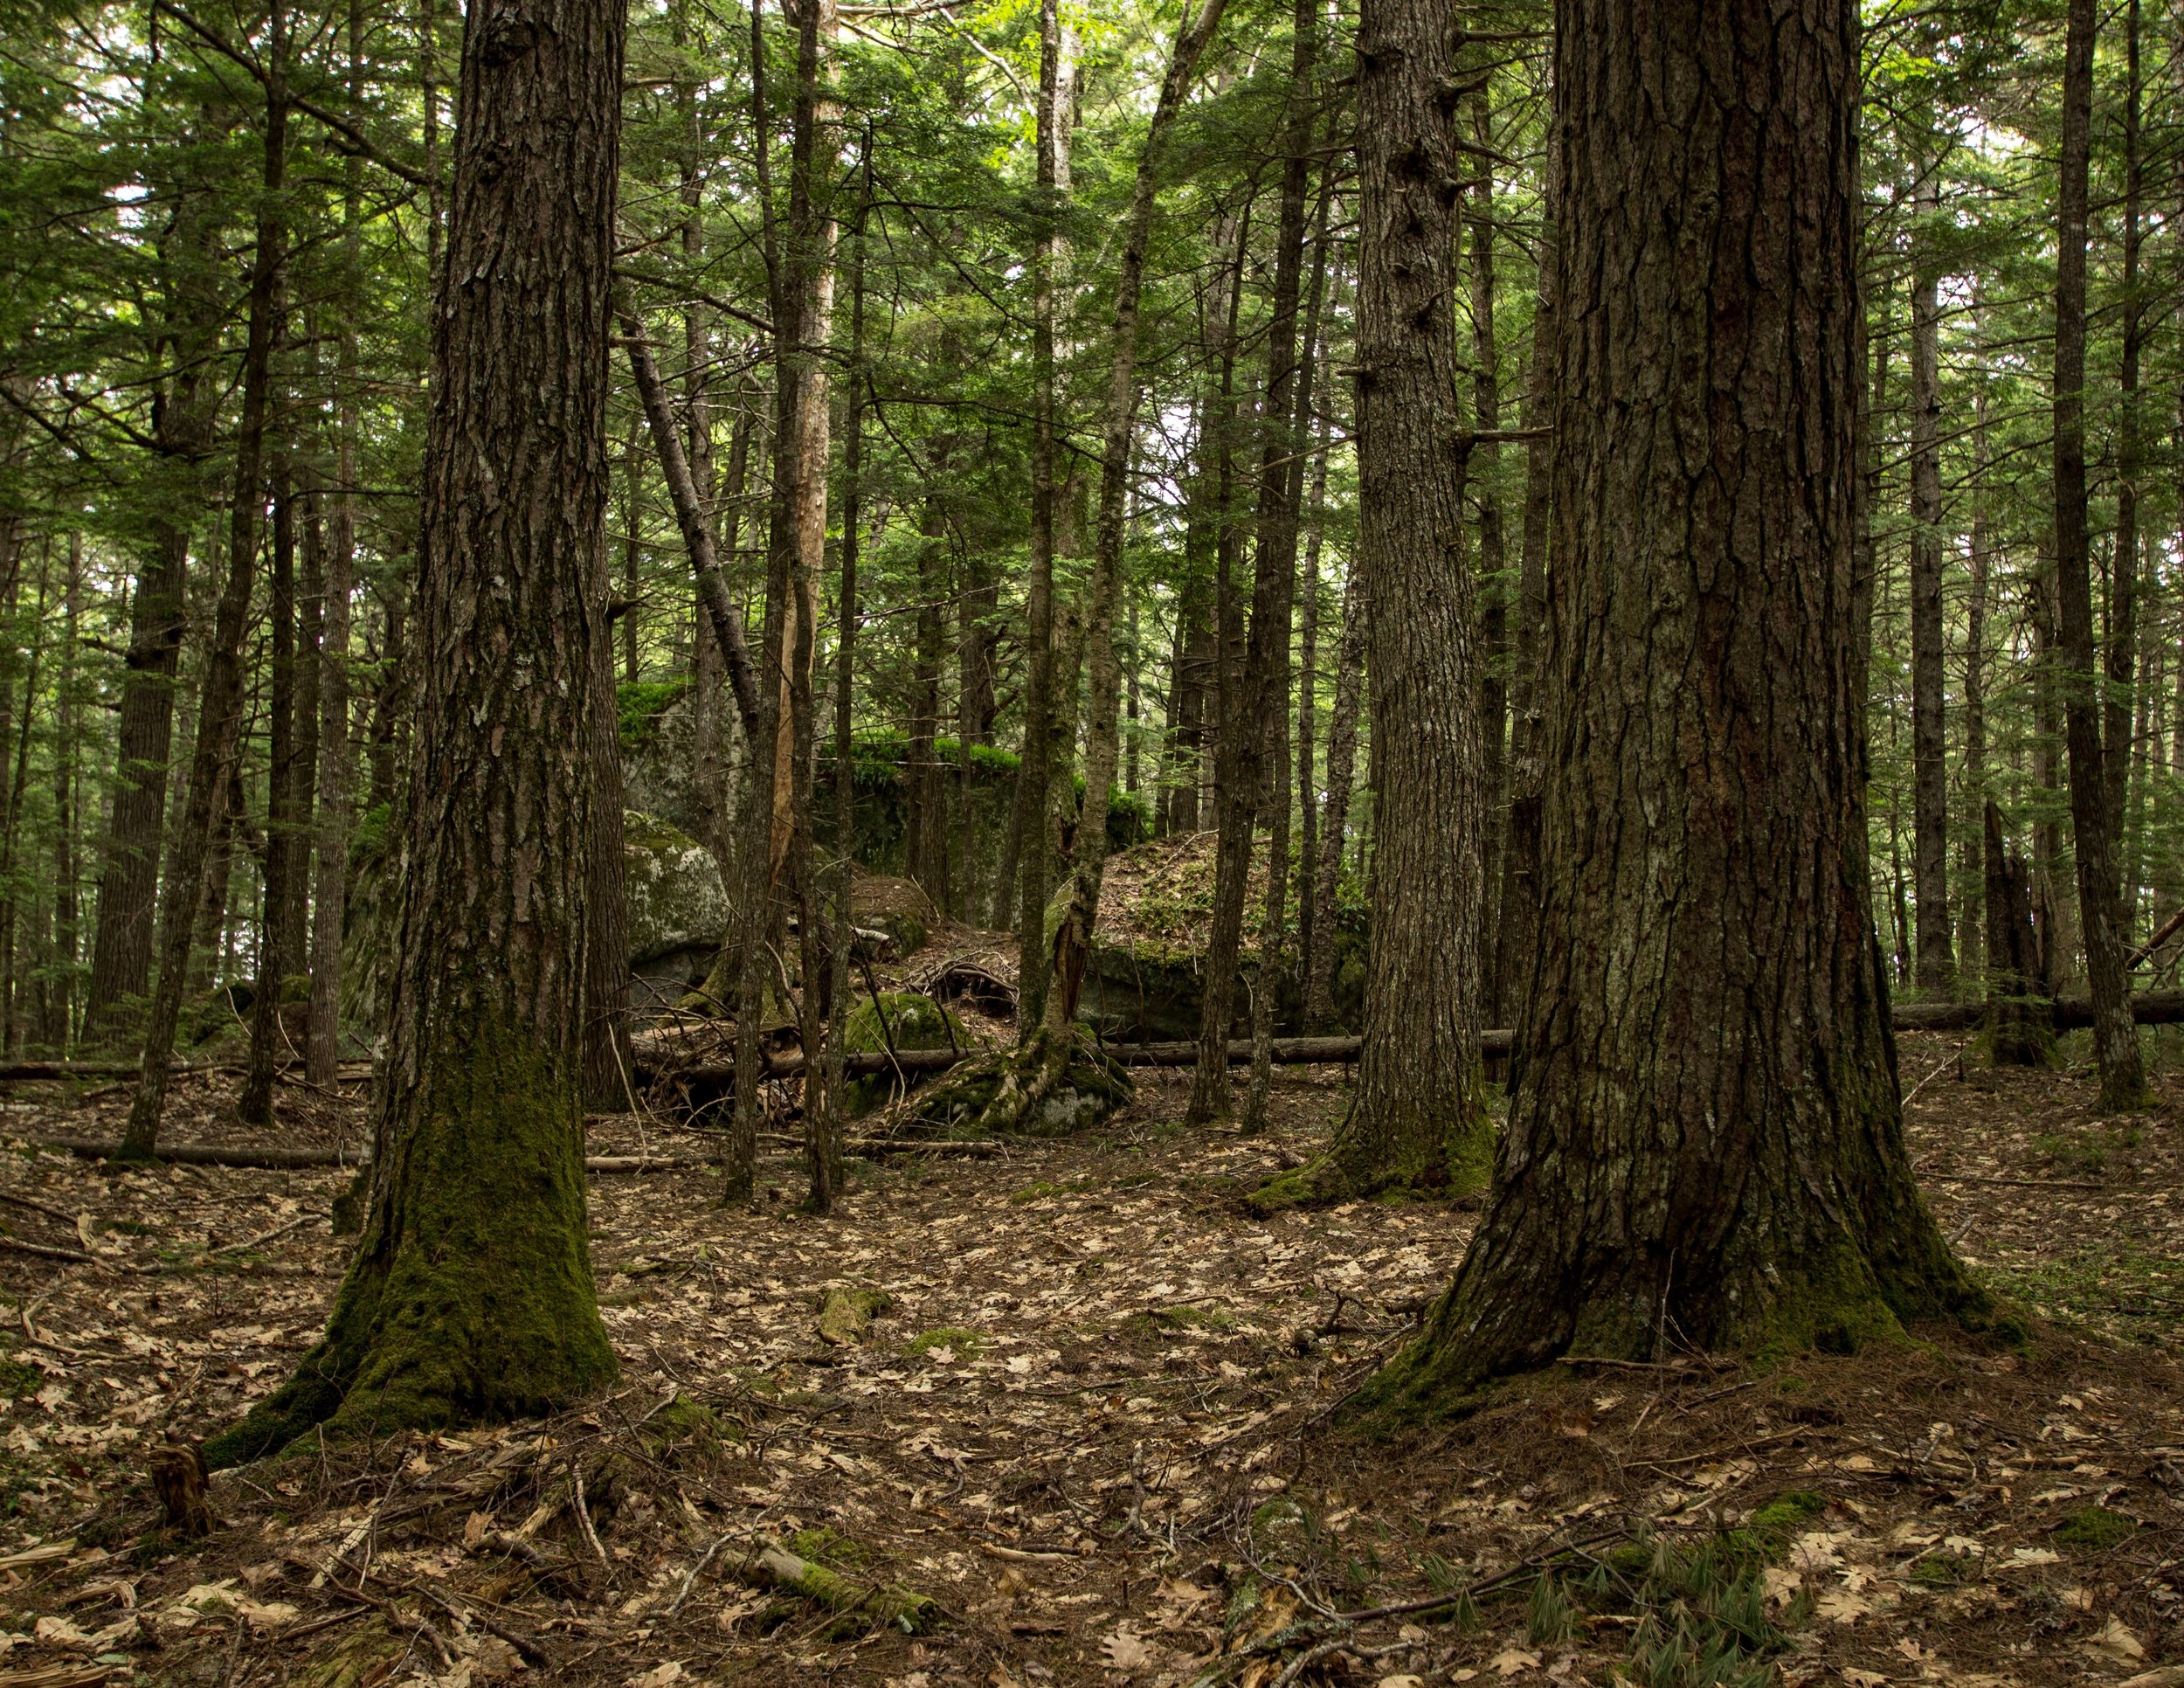 An older stand in the Four Mile Stillwater area of the Medway Lakes Wilderness Area